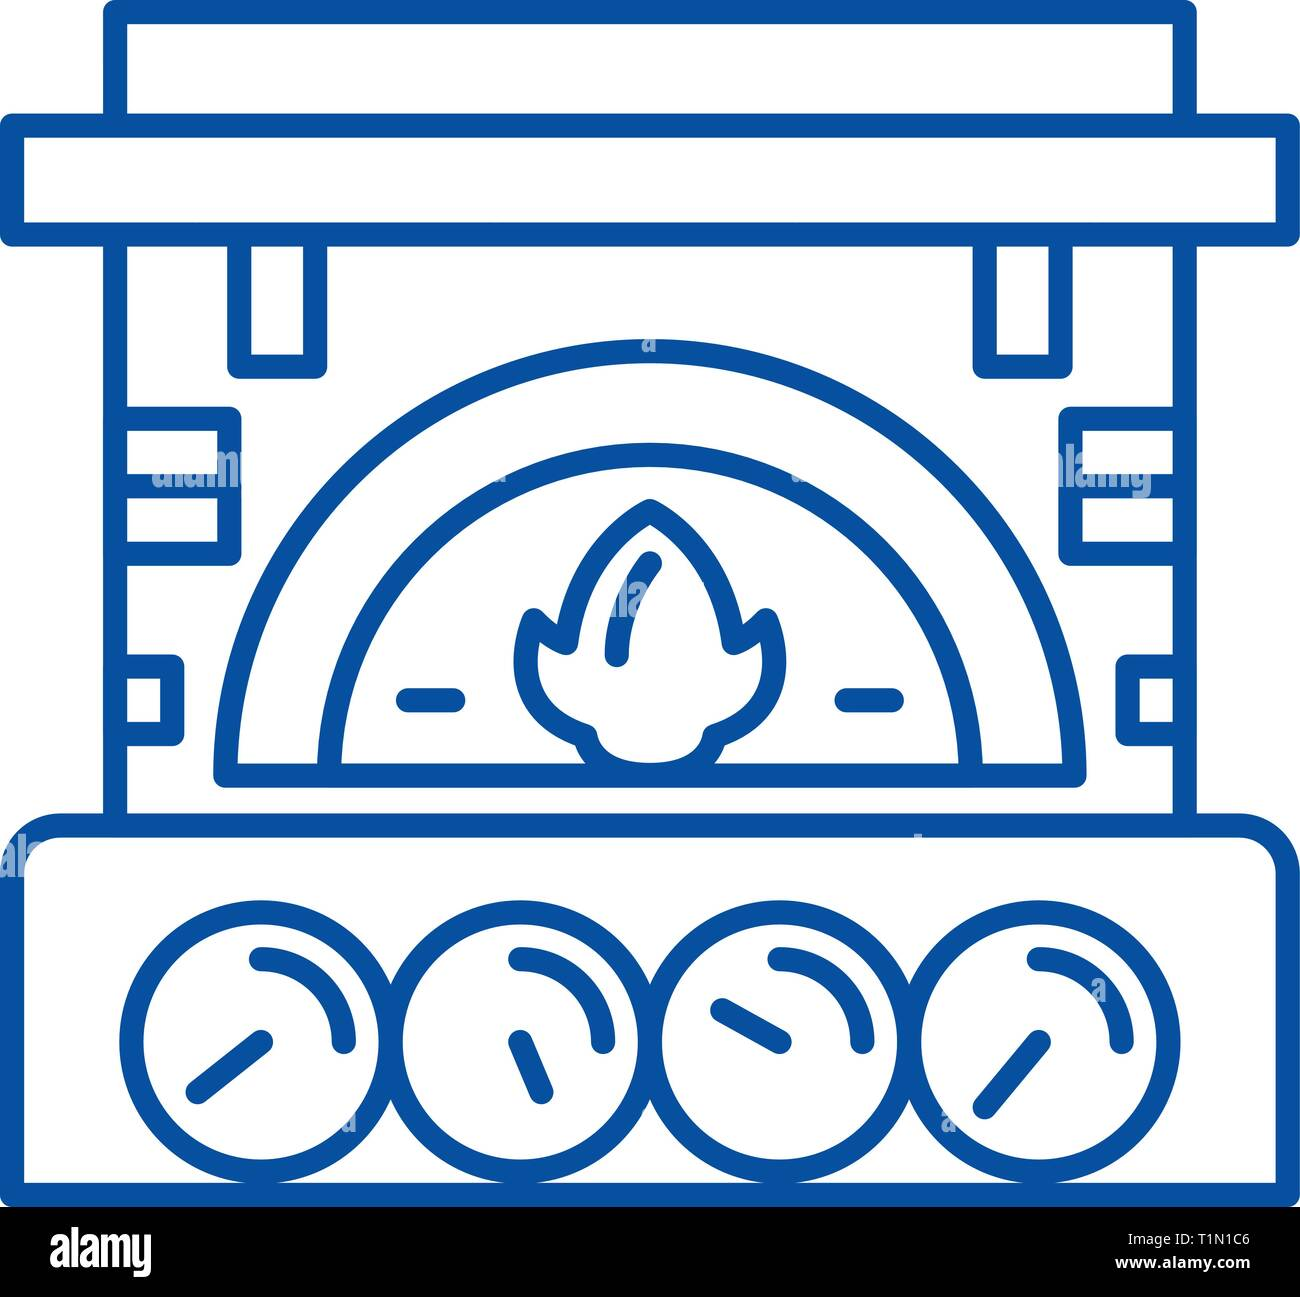 Fireplace brick line icon concept. Fireplace brick flat  vector symbol, sign, outline illustration. - Stock Vector